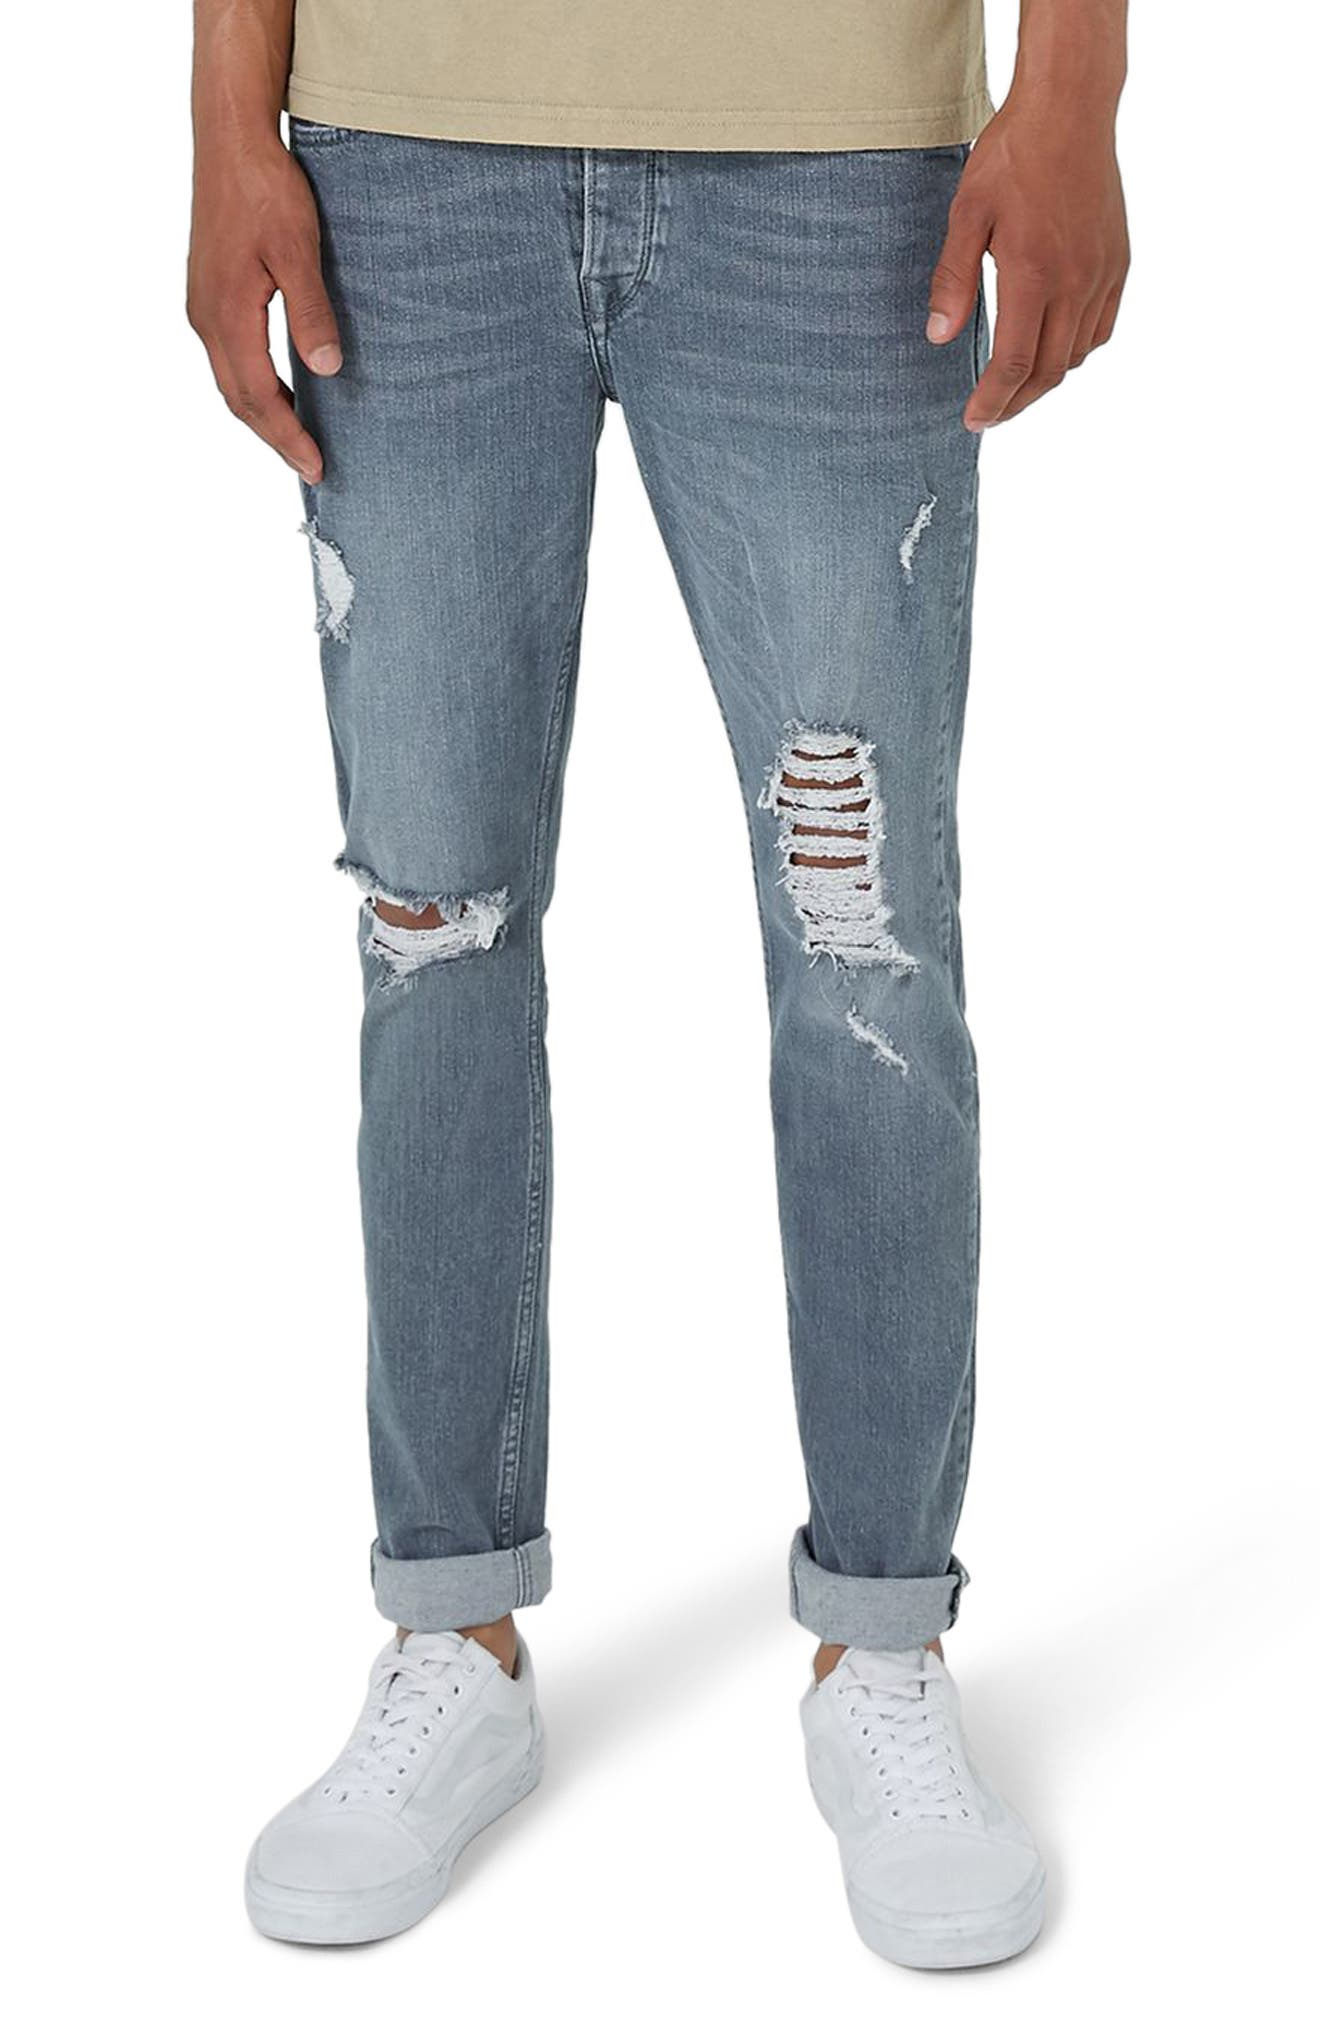 Extreme Rip Stretch Jeans,                         Main,                         color, 020